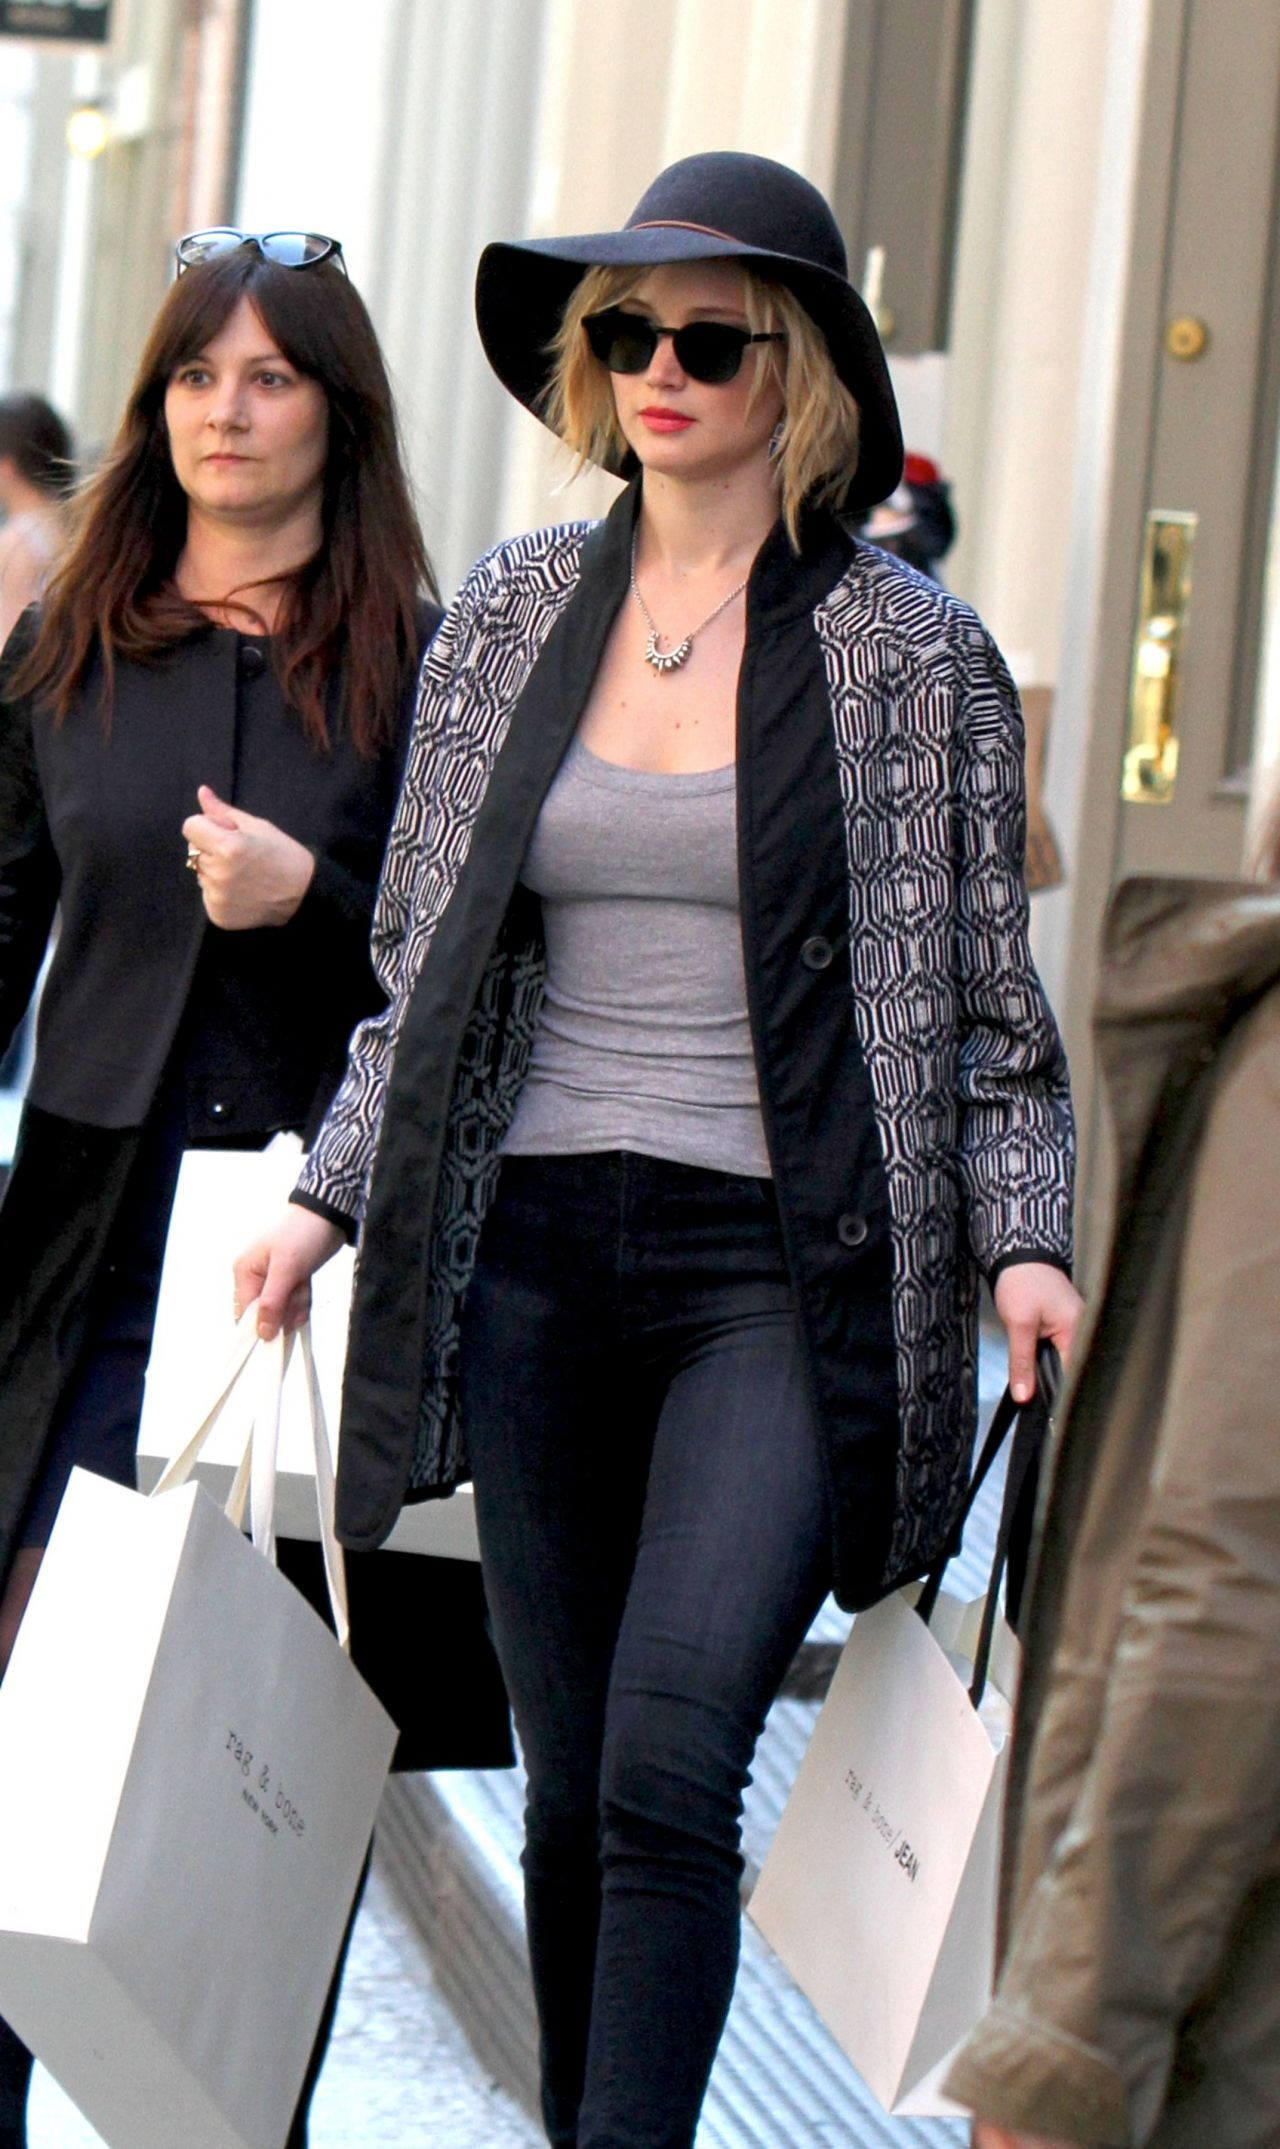 Jennifer Lawrence Out For Shopping - at Rag & Bone in SoHo - April 2014